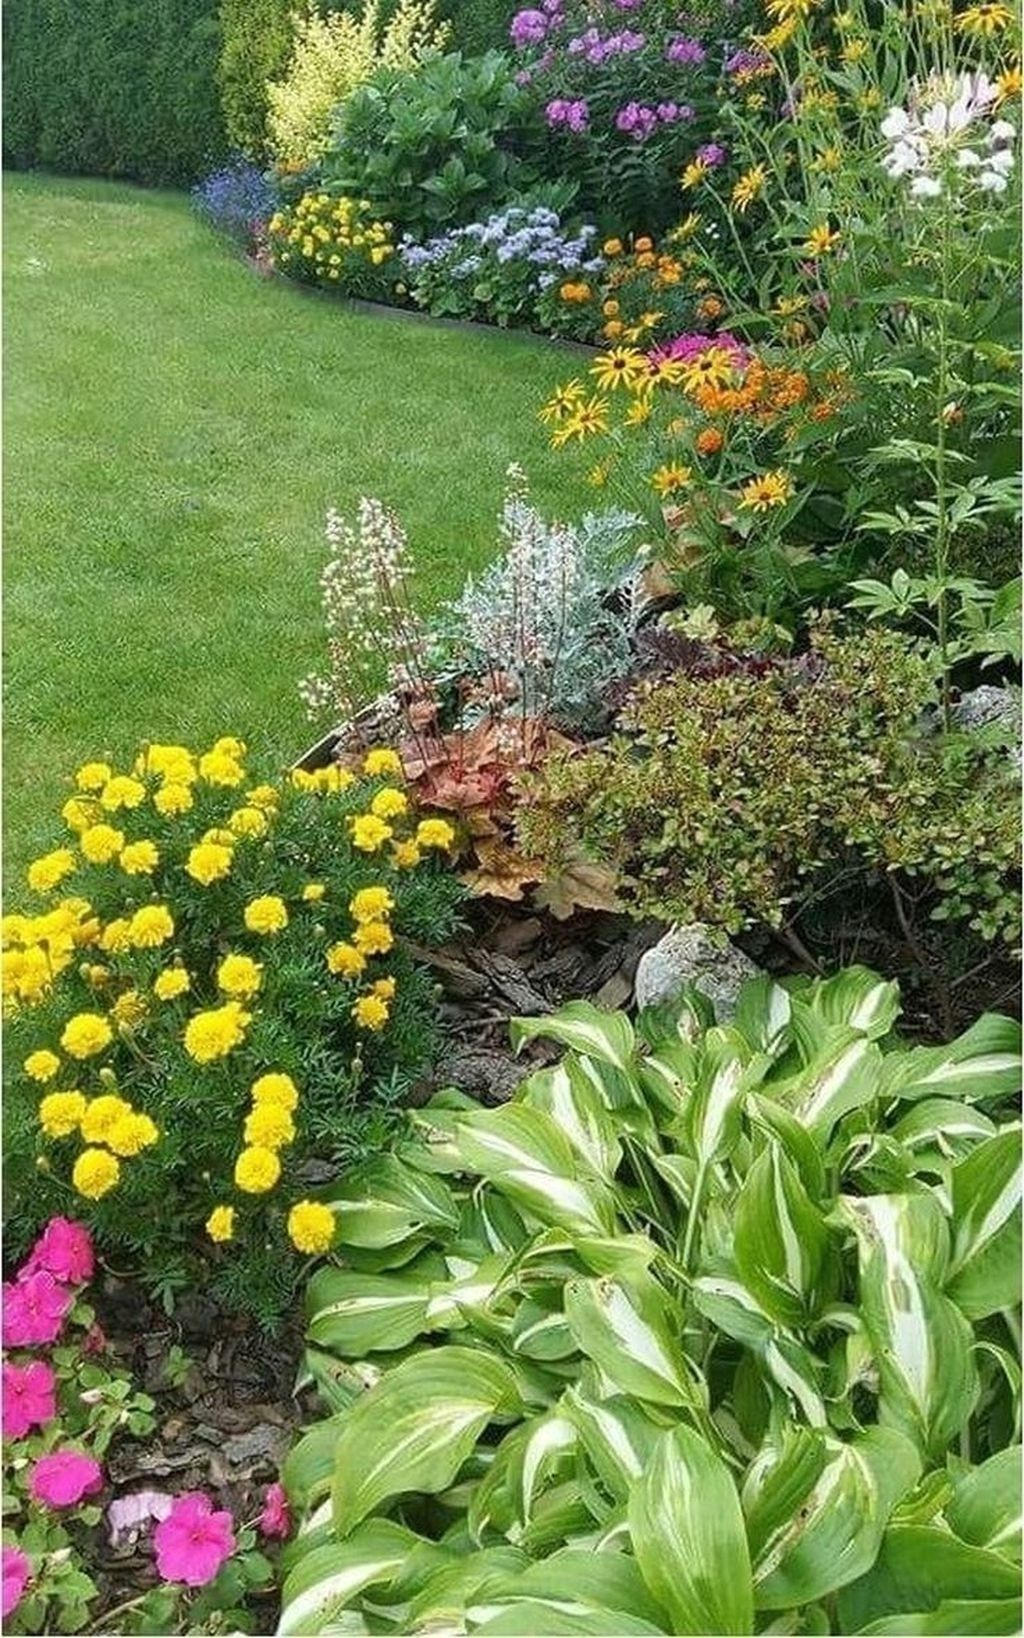 59 Awesome Front Yard And Backyard Landscaping Design Ideas In 2020 Backyard Landscape Architecture Backyard Landscaping Designs Cottage Garden Design